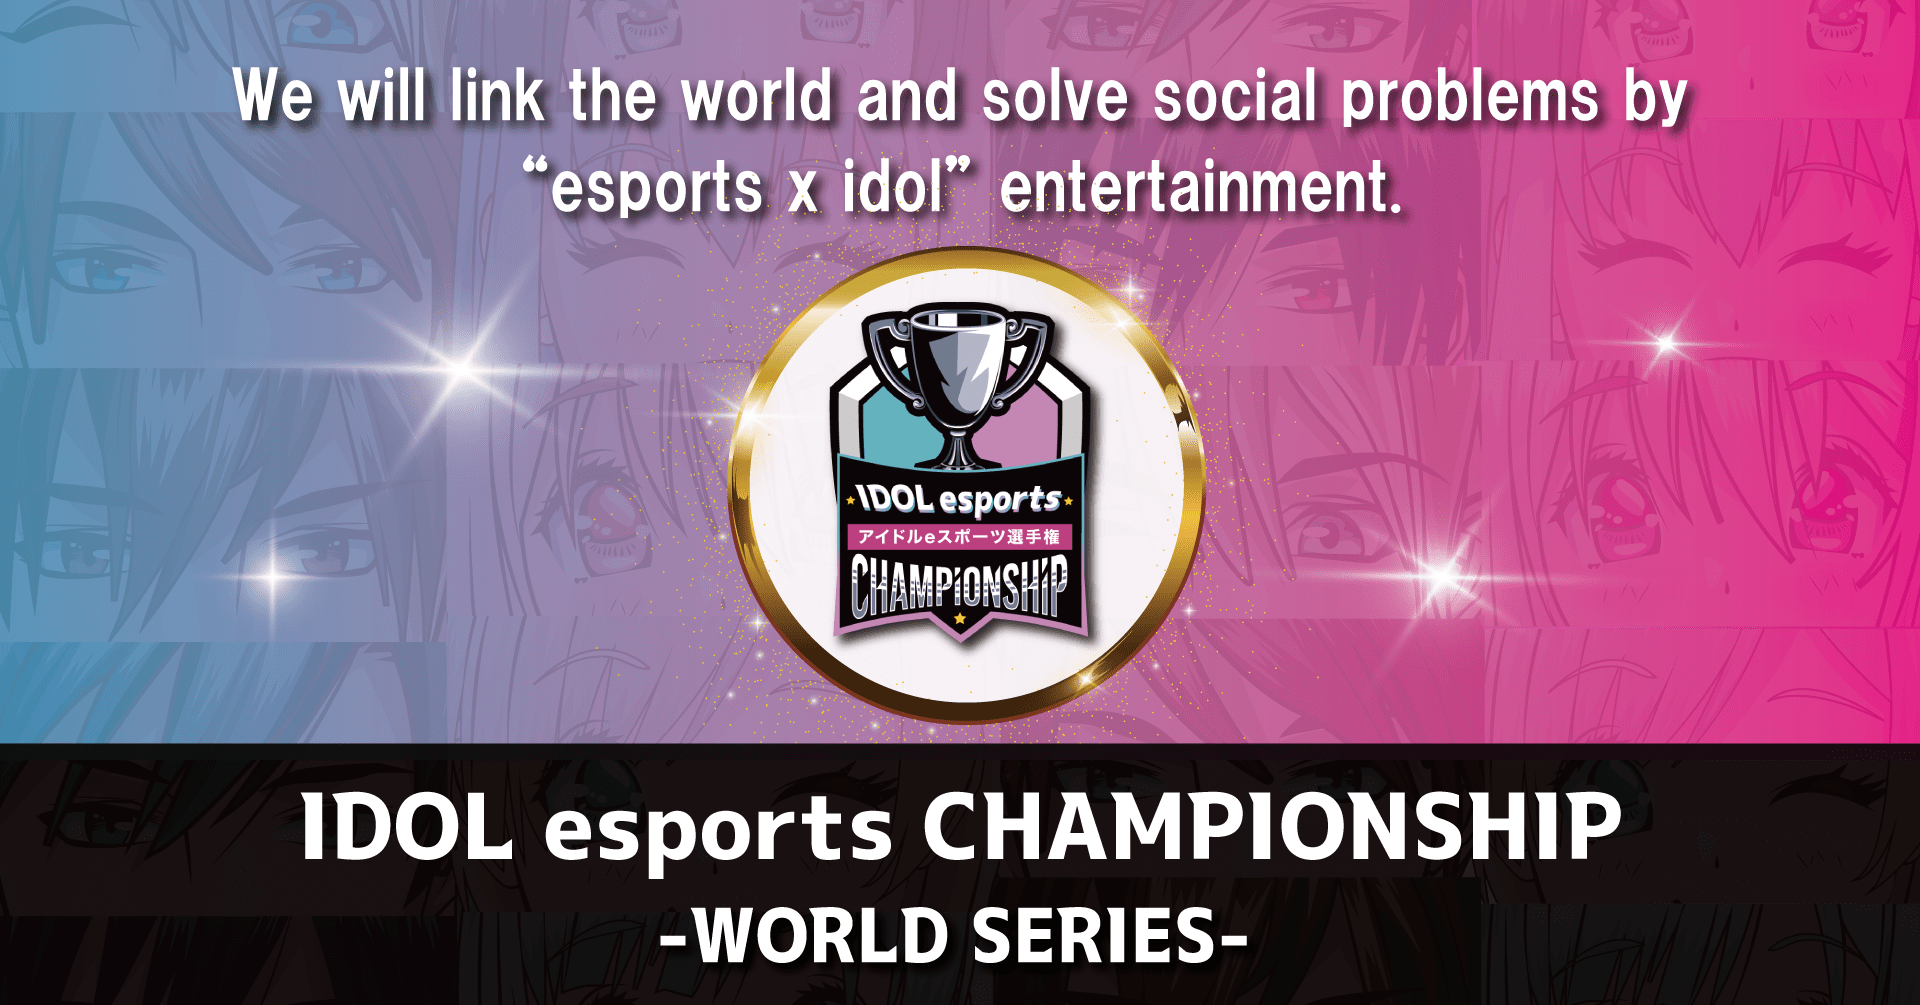 「IDOL esports CHAMPIONSHIP-WORLD SERIES-」 to be hosted!